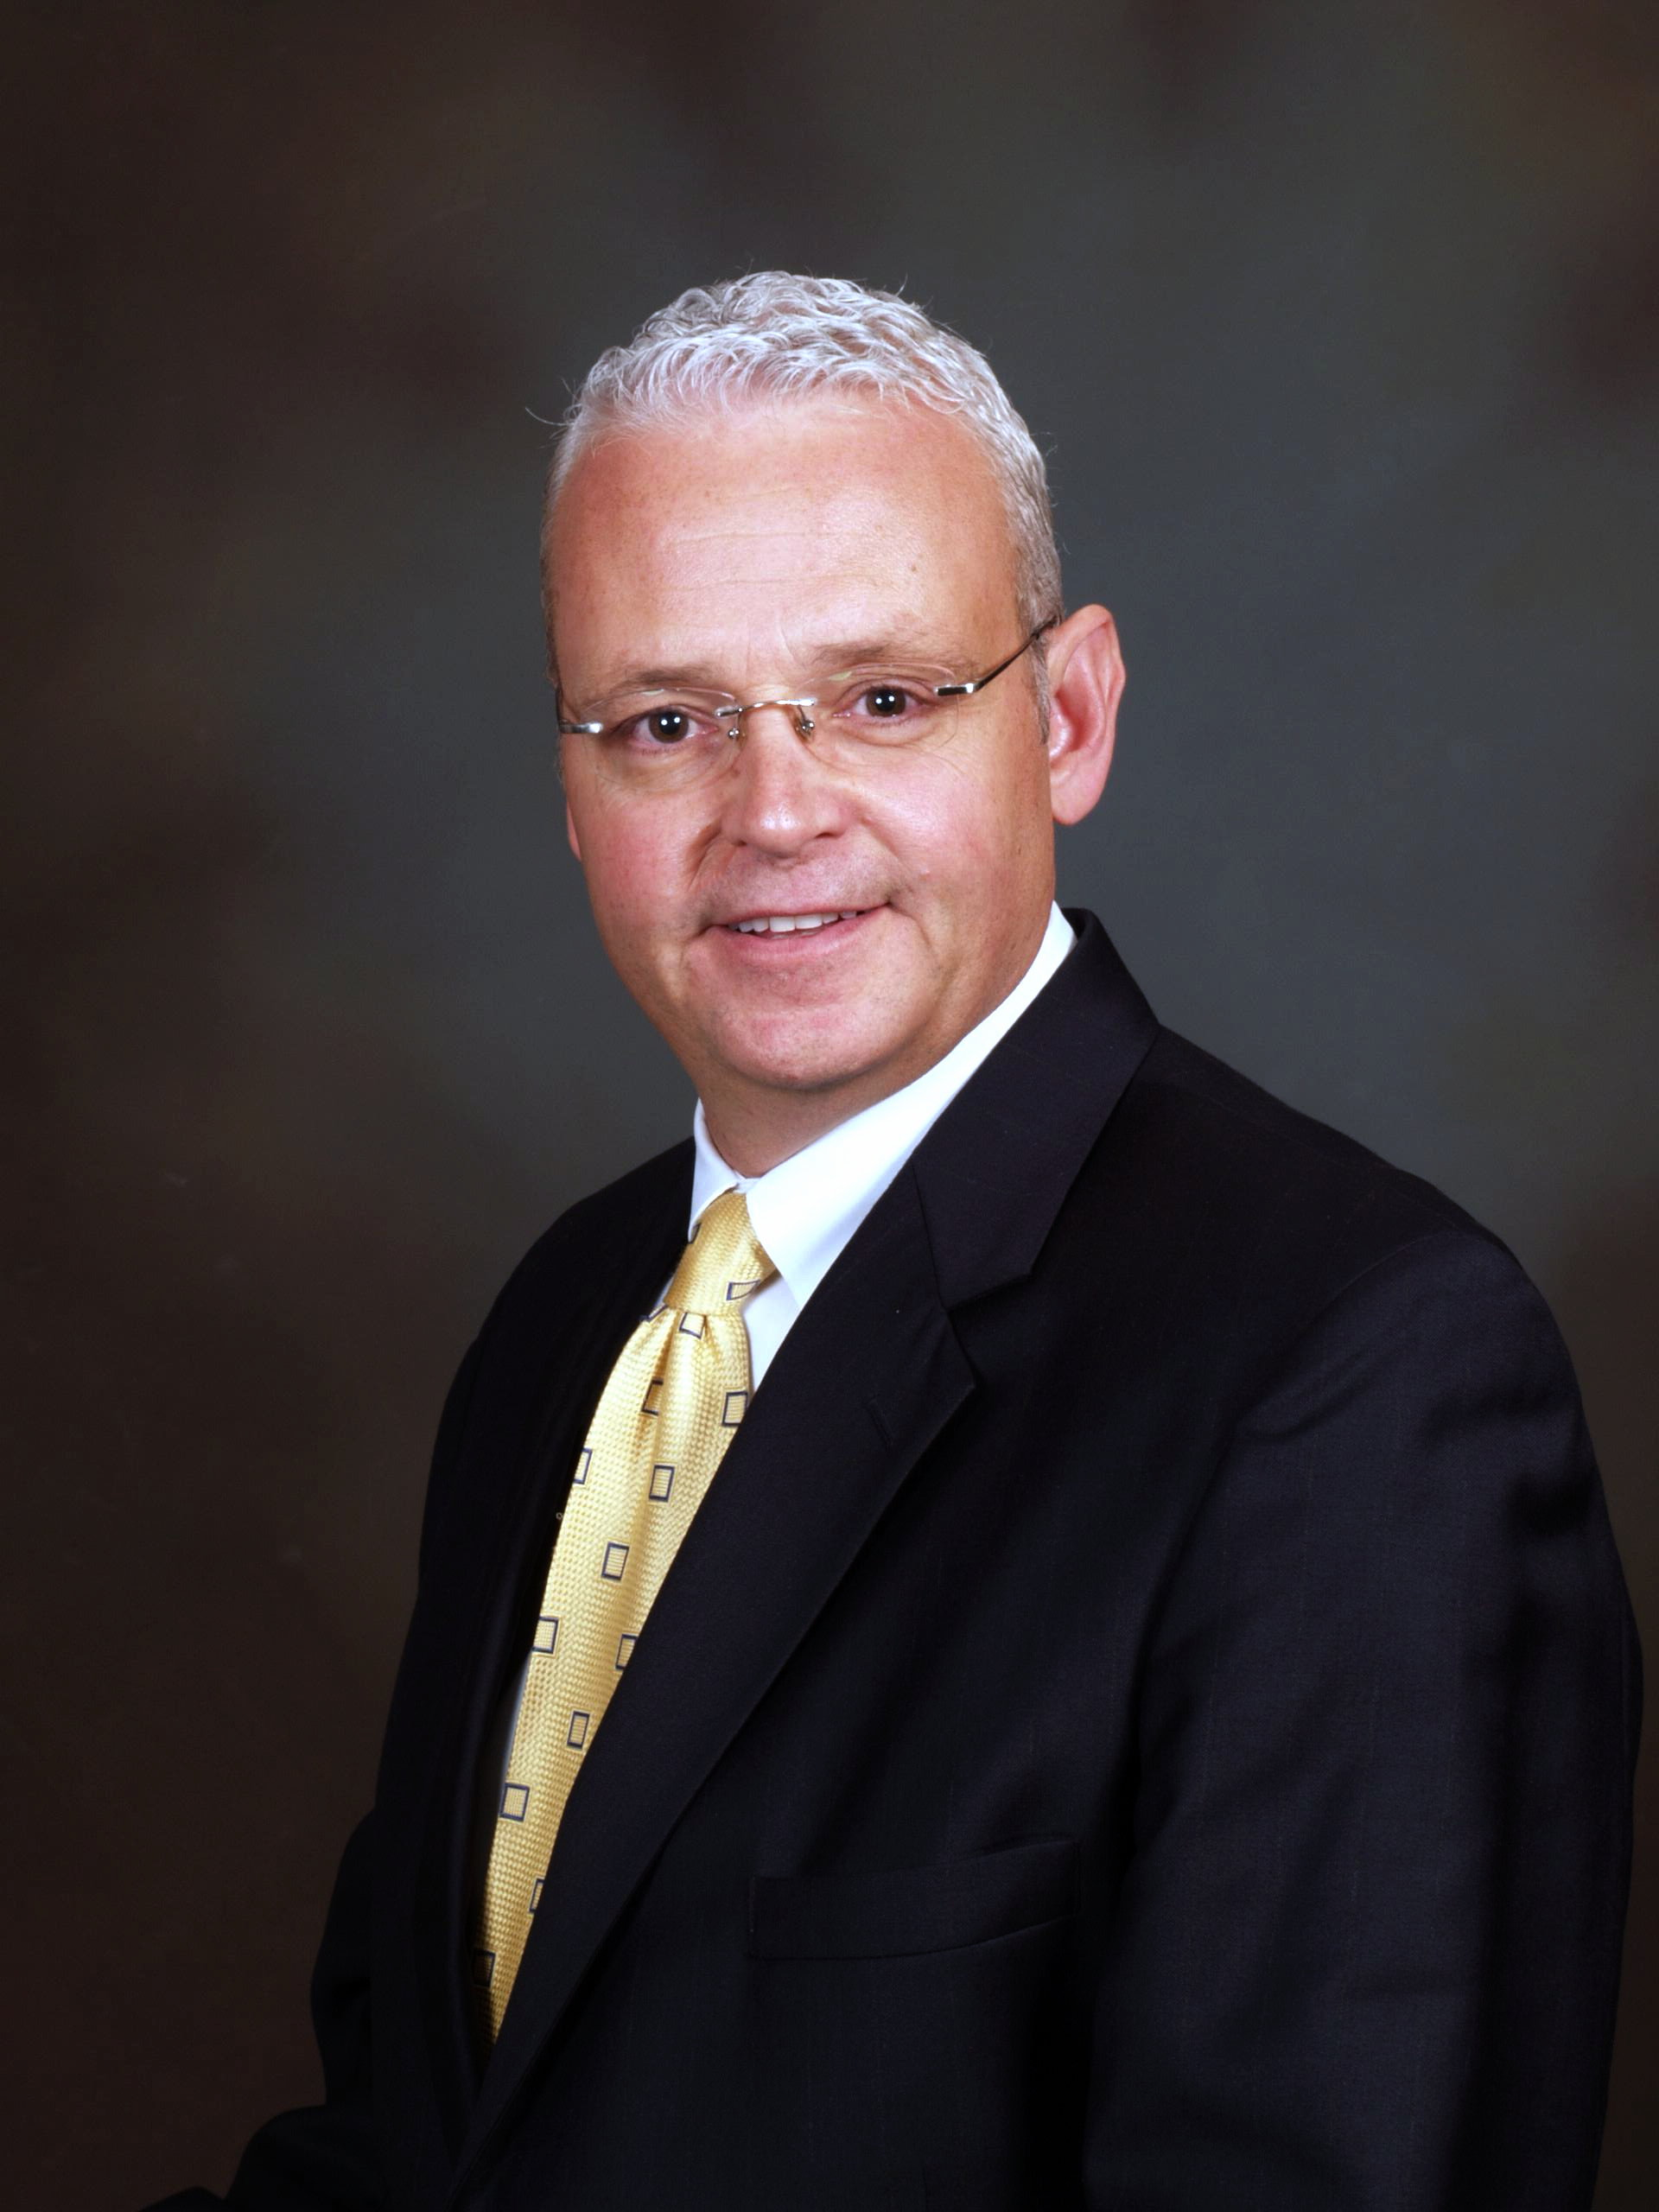 Thomas Ford, financial advisor Waterbury CT